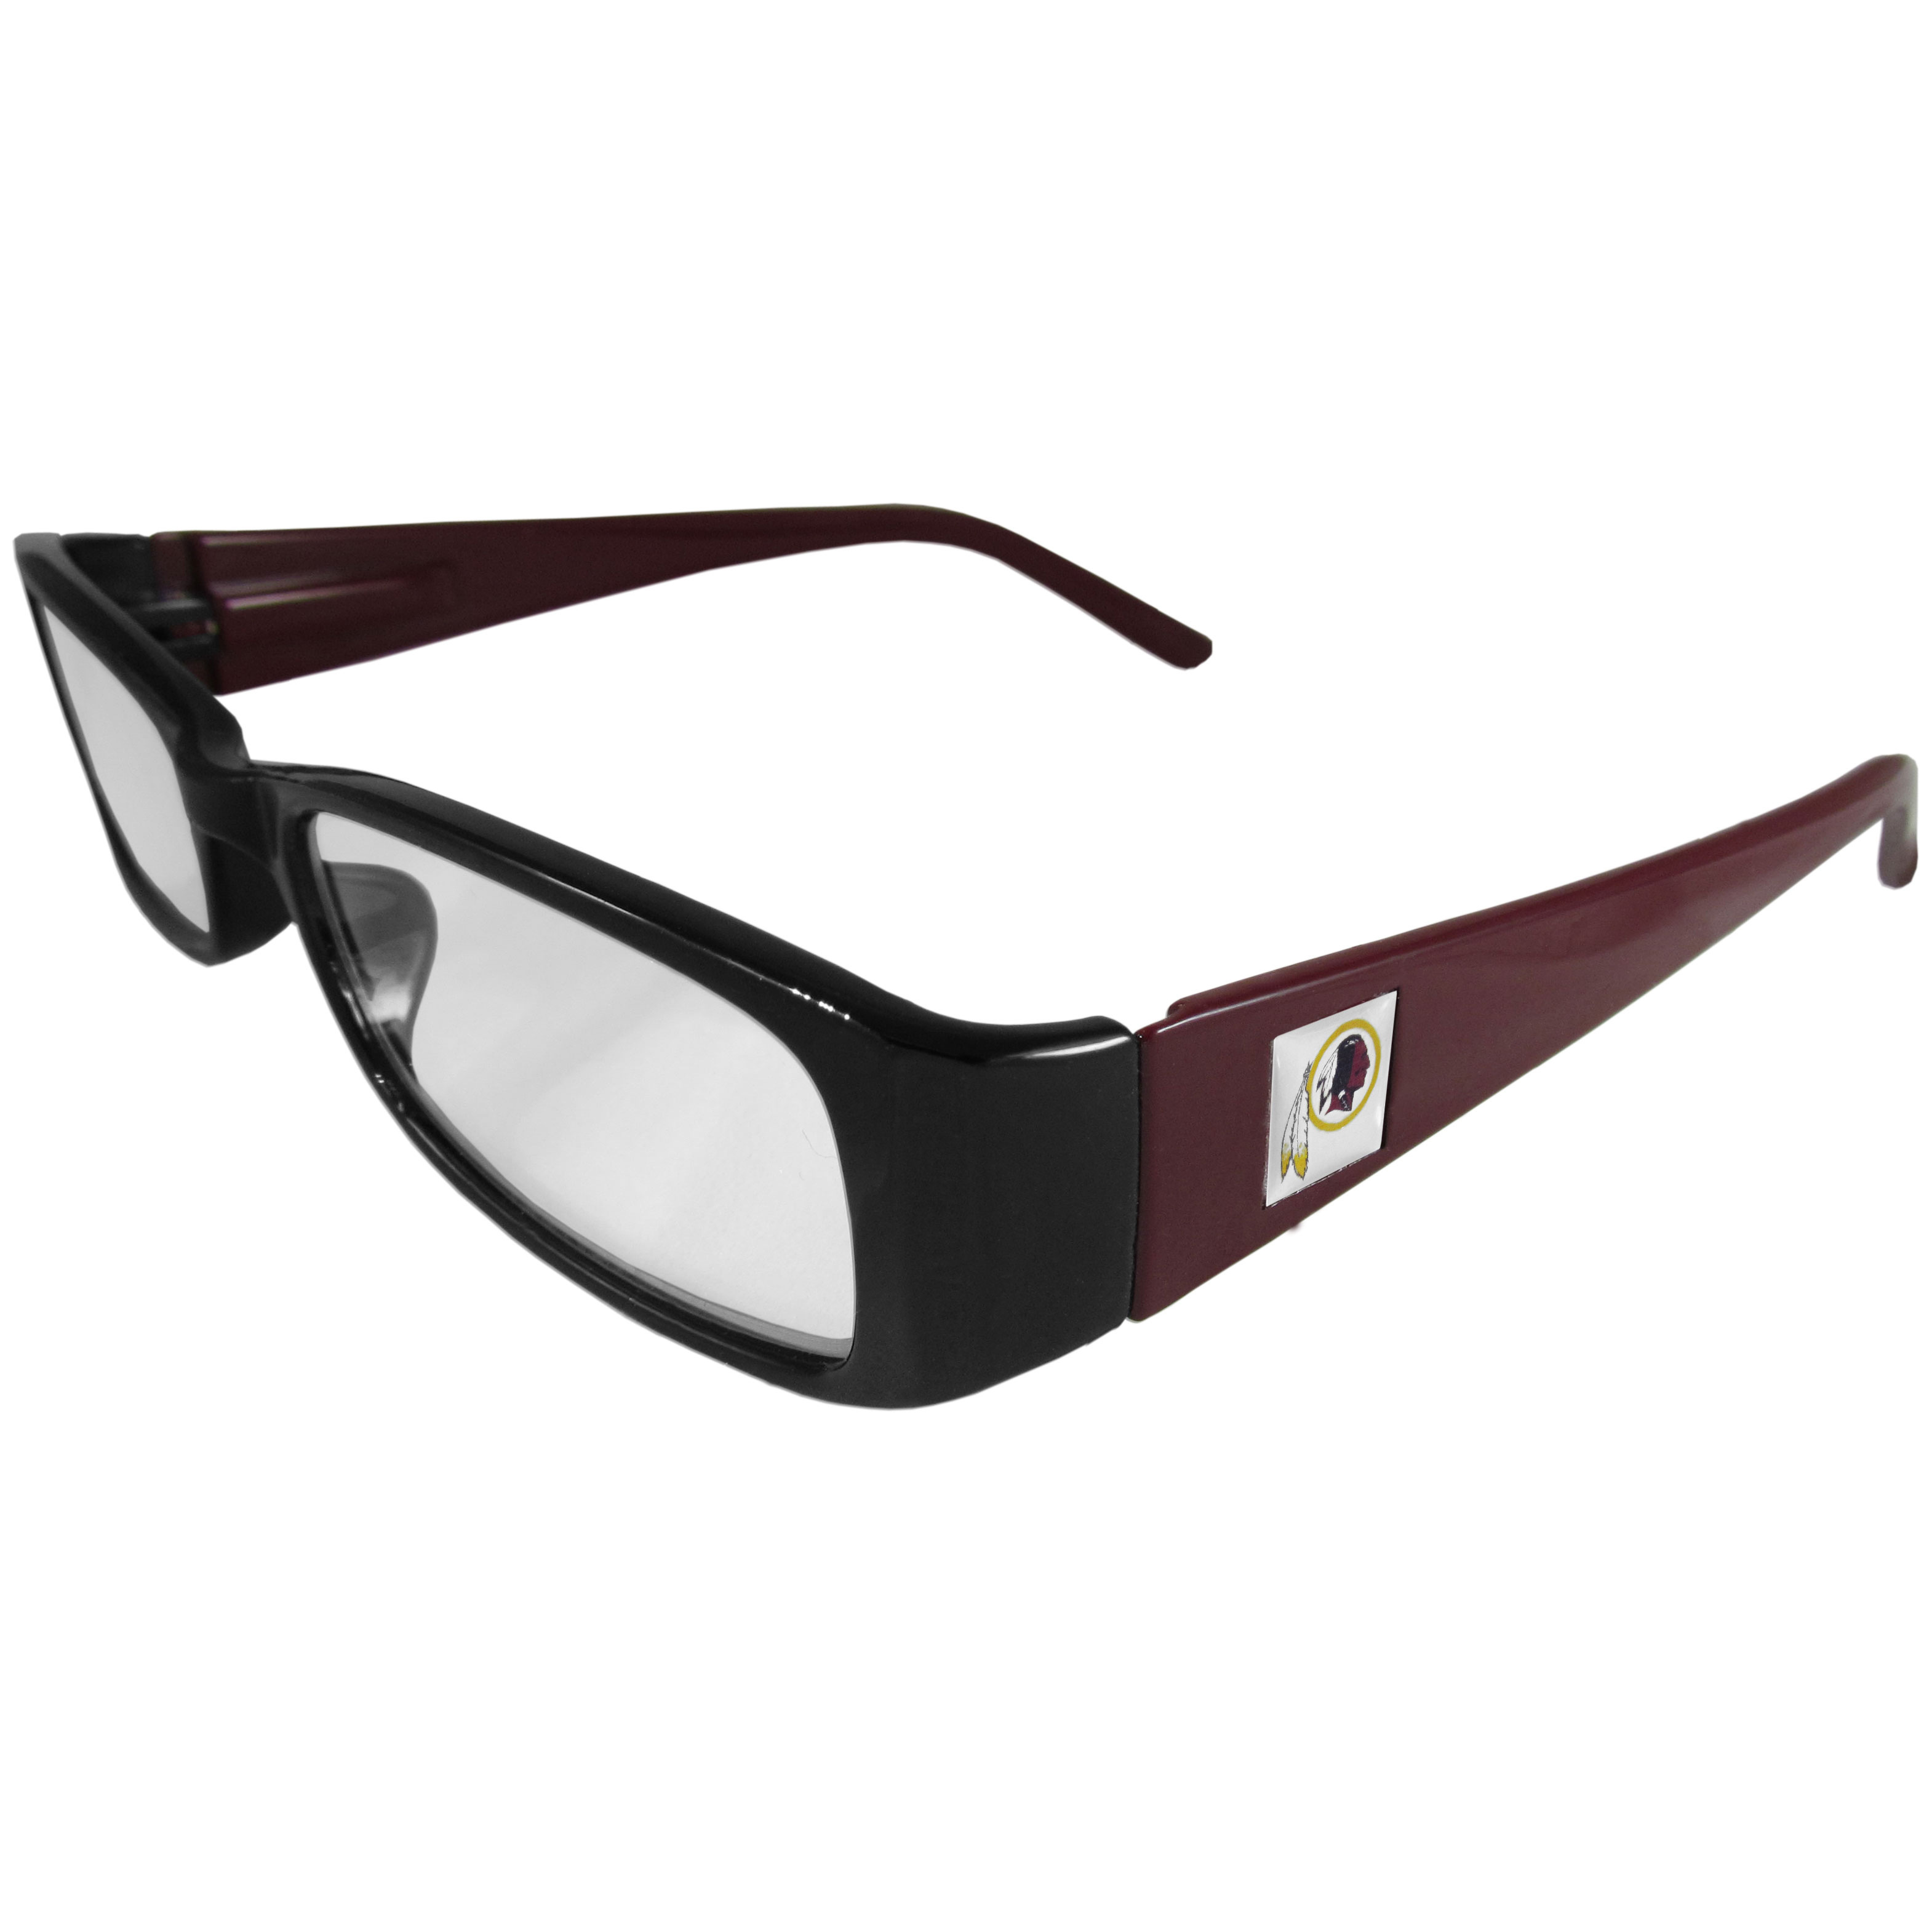 Washington Redskins Reading Glasses +1.25 - Our Washington Redskins reading glasses are 5.25 inches wide and feature the team logo on each arm. Magnification Power 1.25